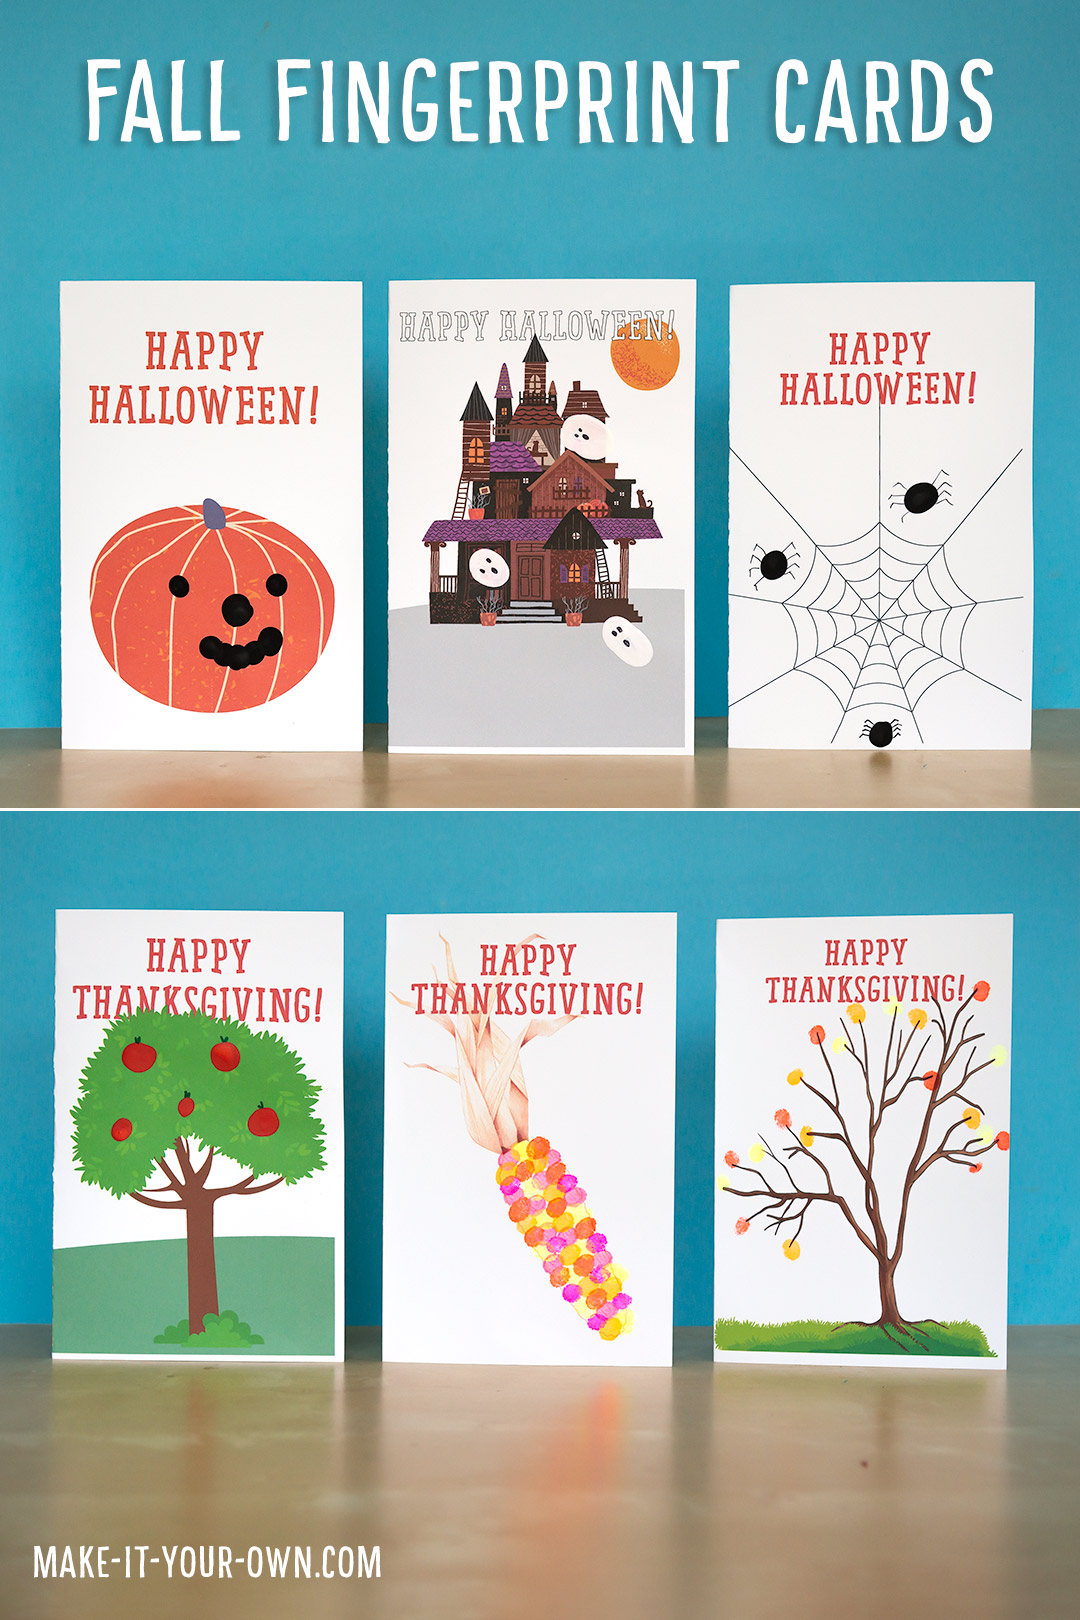 Fall Fingerprint Cards: We provide you the templates to make cards with your child's fingerprints for Thanksgiving and Halloween! This is a personal way to say hello to Grandma and Grandpa, for friends and neighbours! This simple seasonal craft allows children to practise their writing skills in meaningful ways! #fallcraft #thanksgivingcraft #halloweencraft